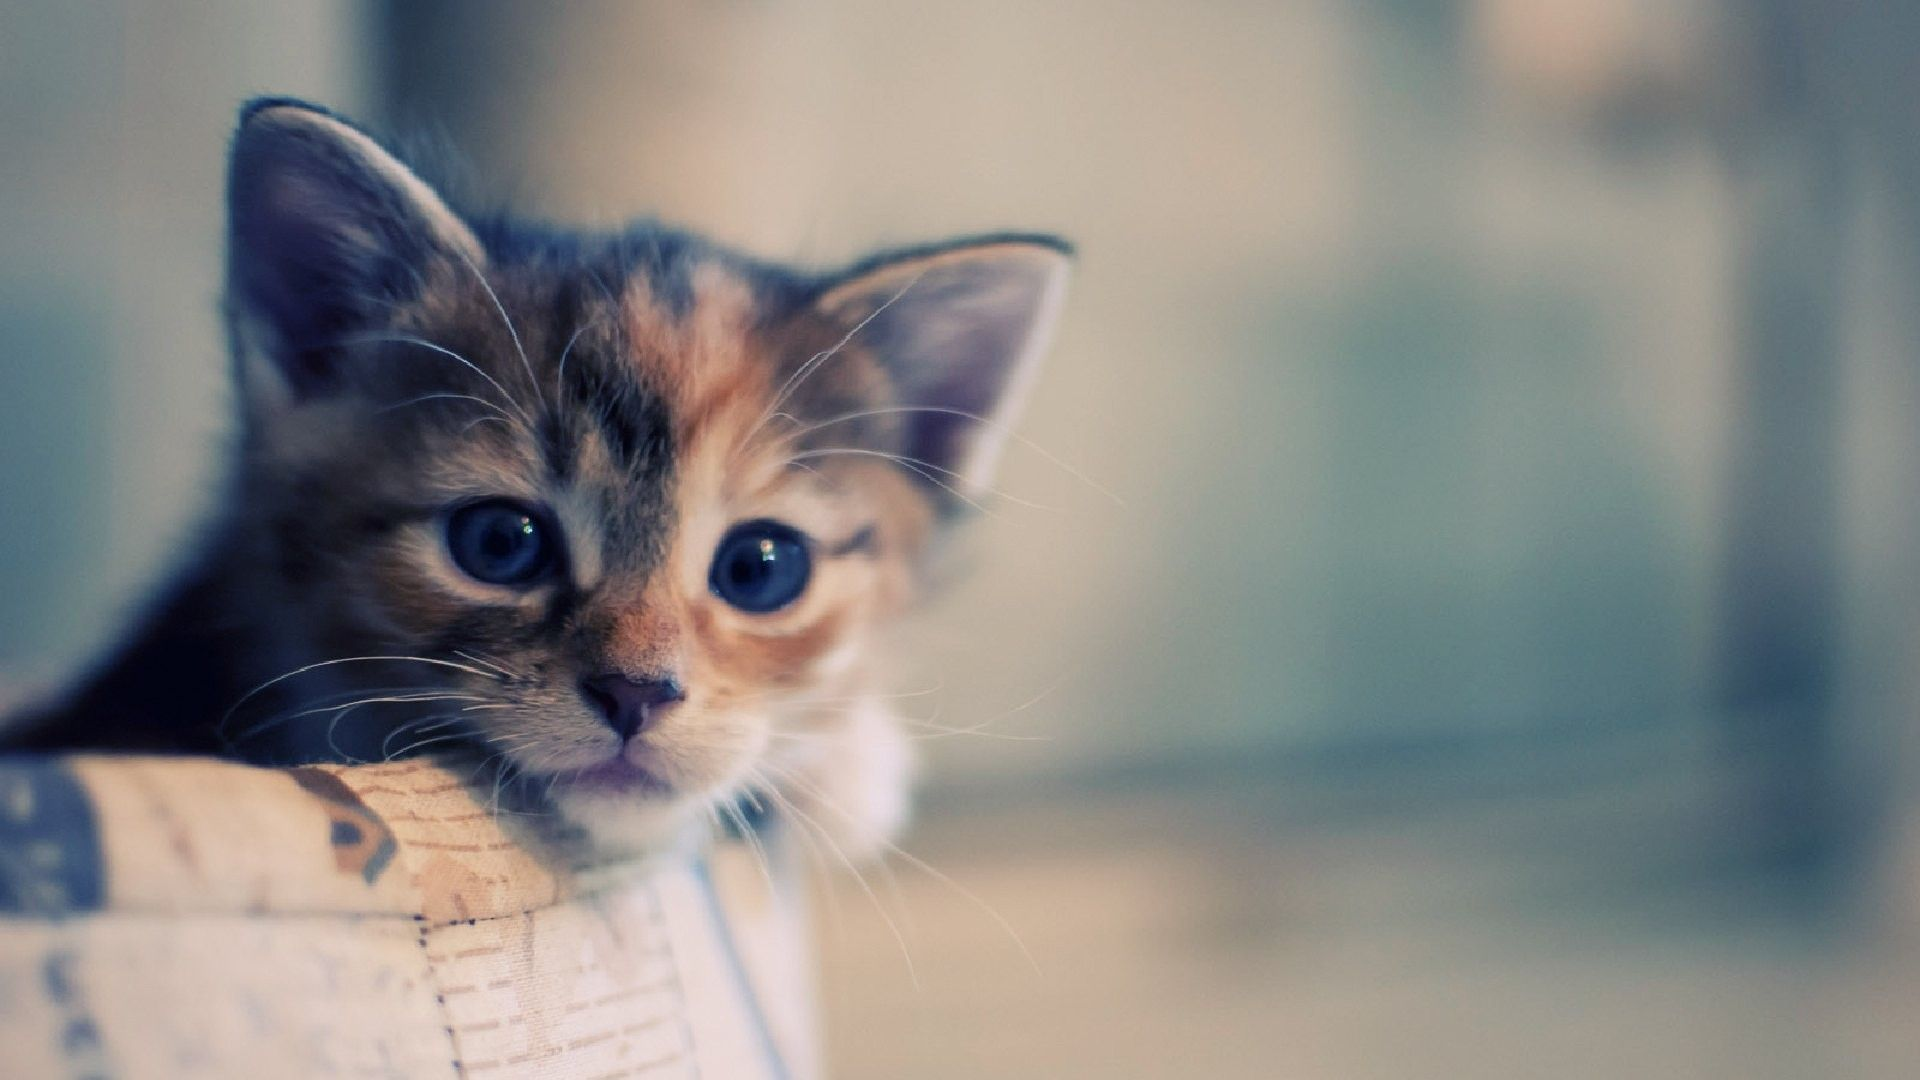 hd cat wallpapers 1920x1080 Google keresés Cute cat